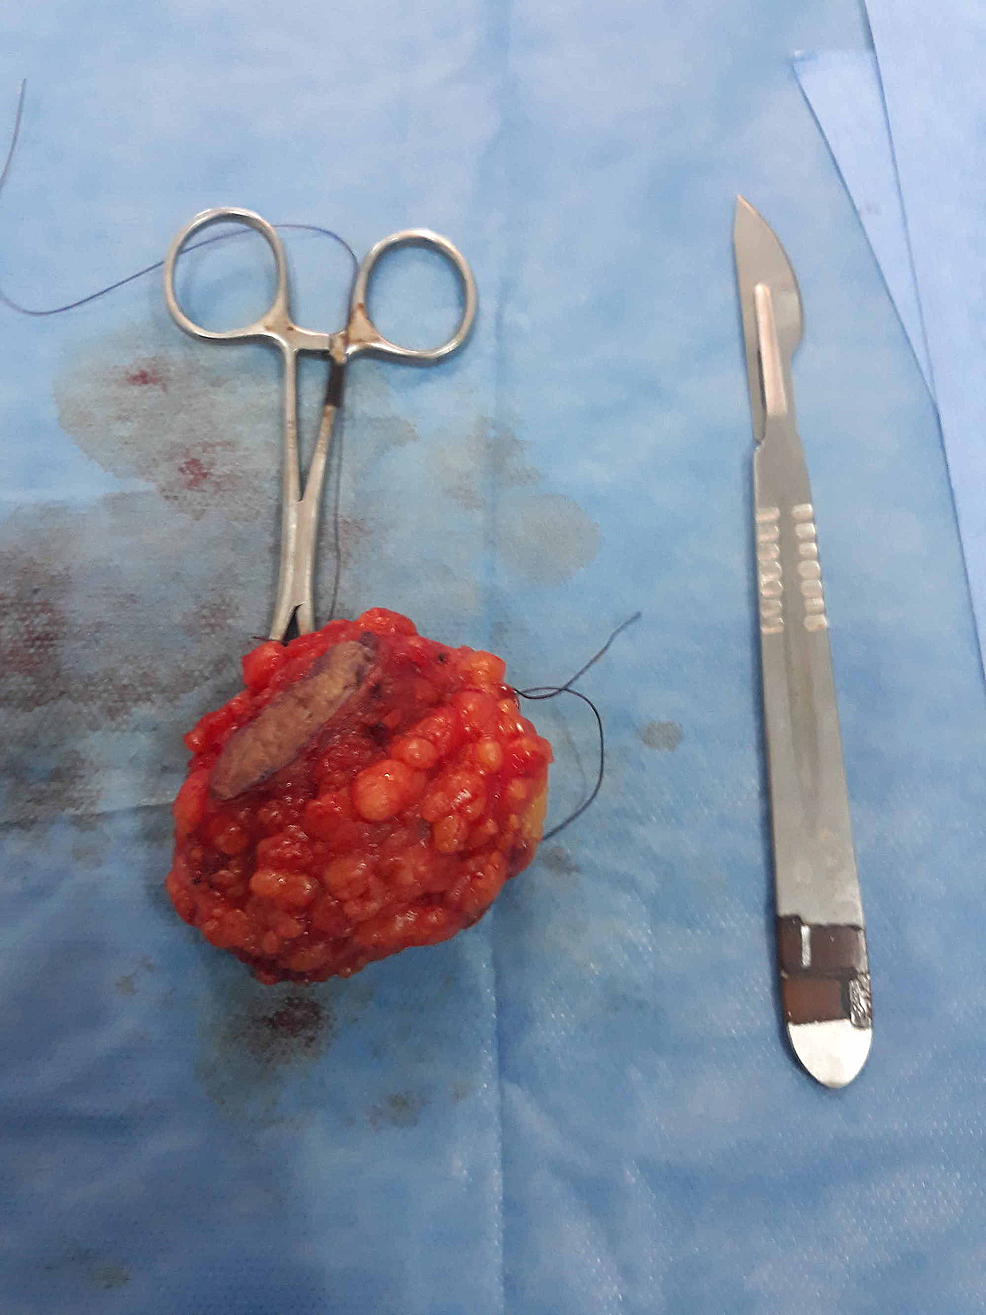 Image-showing-the-resected-mass